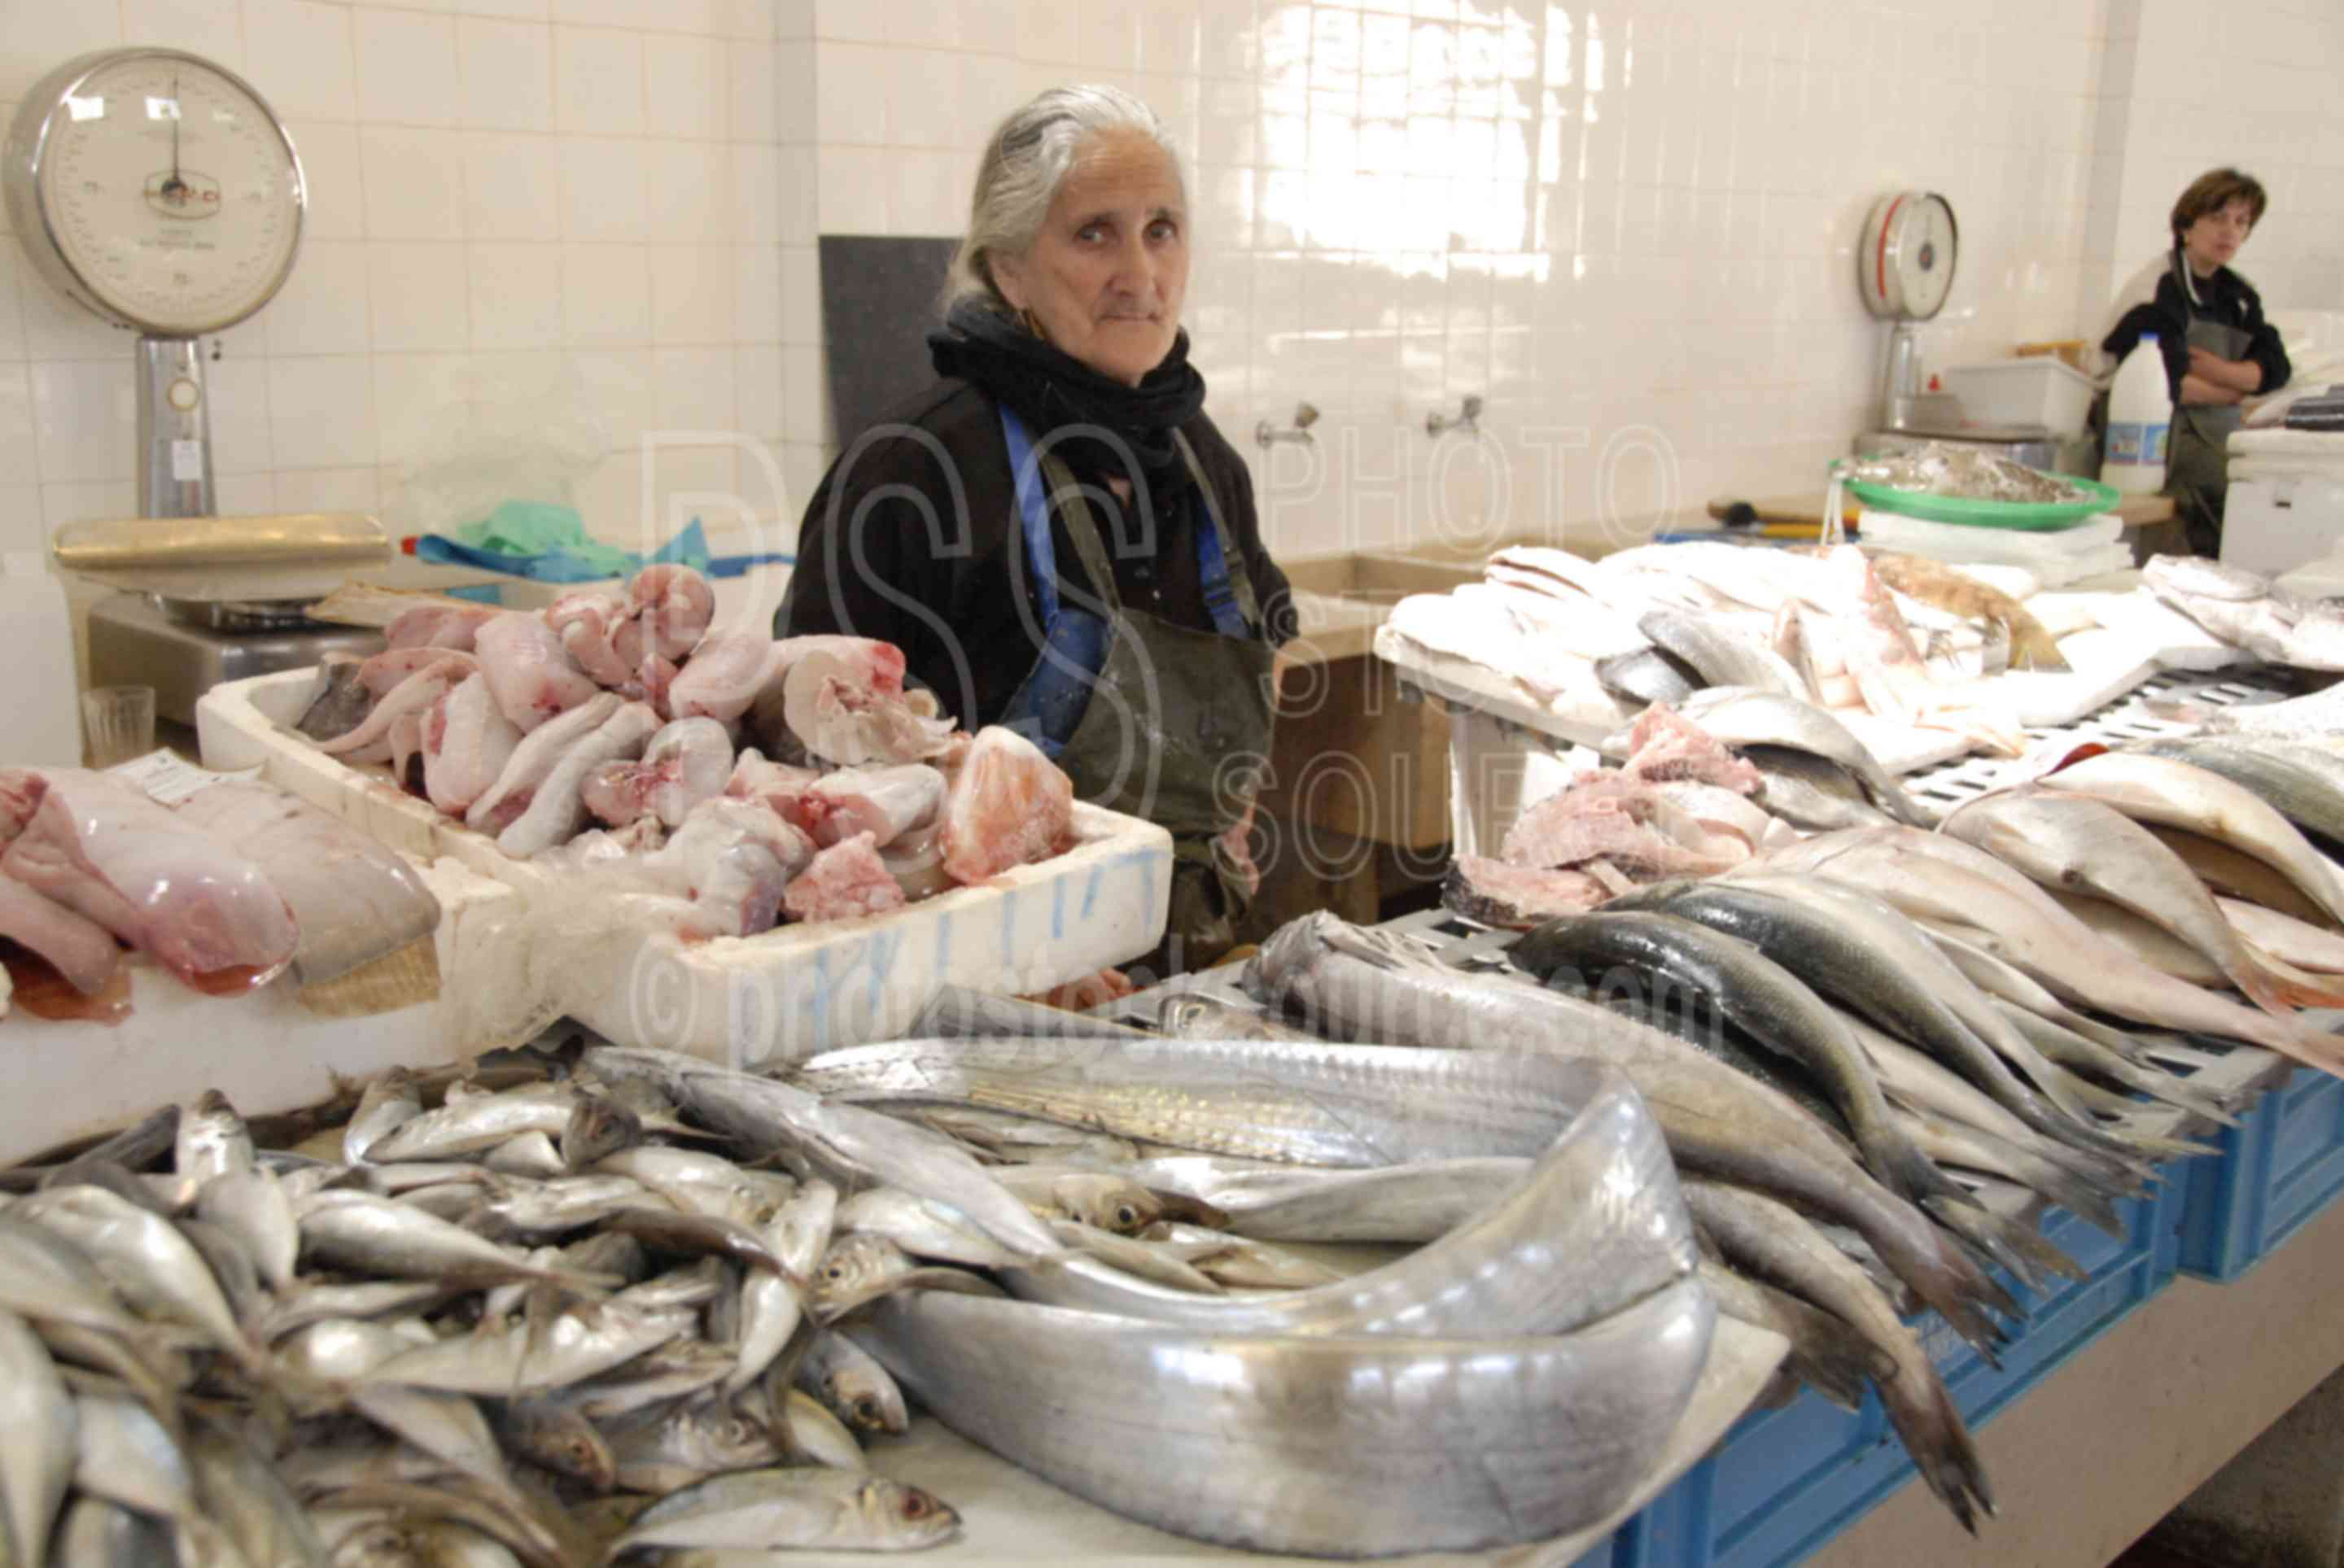 Fish Seller,food,seller,vendor,mercado do peixe,woman,market,fish,fishmonger